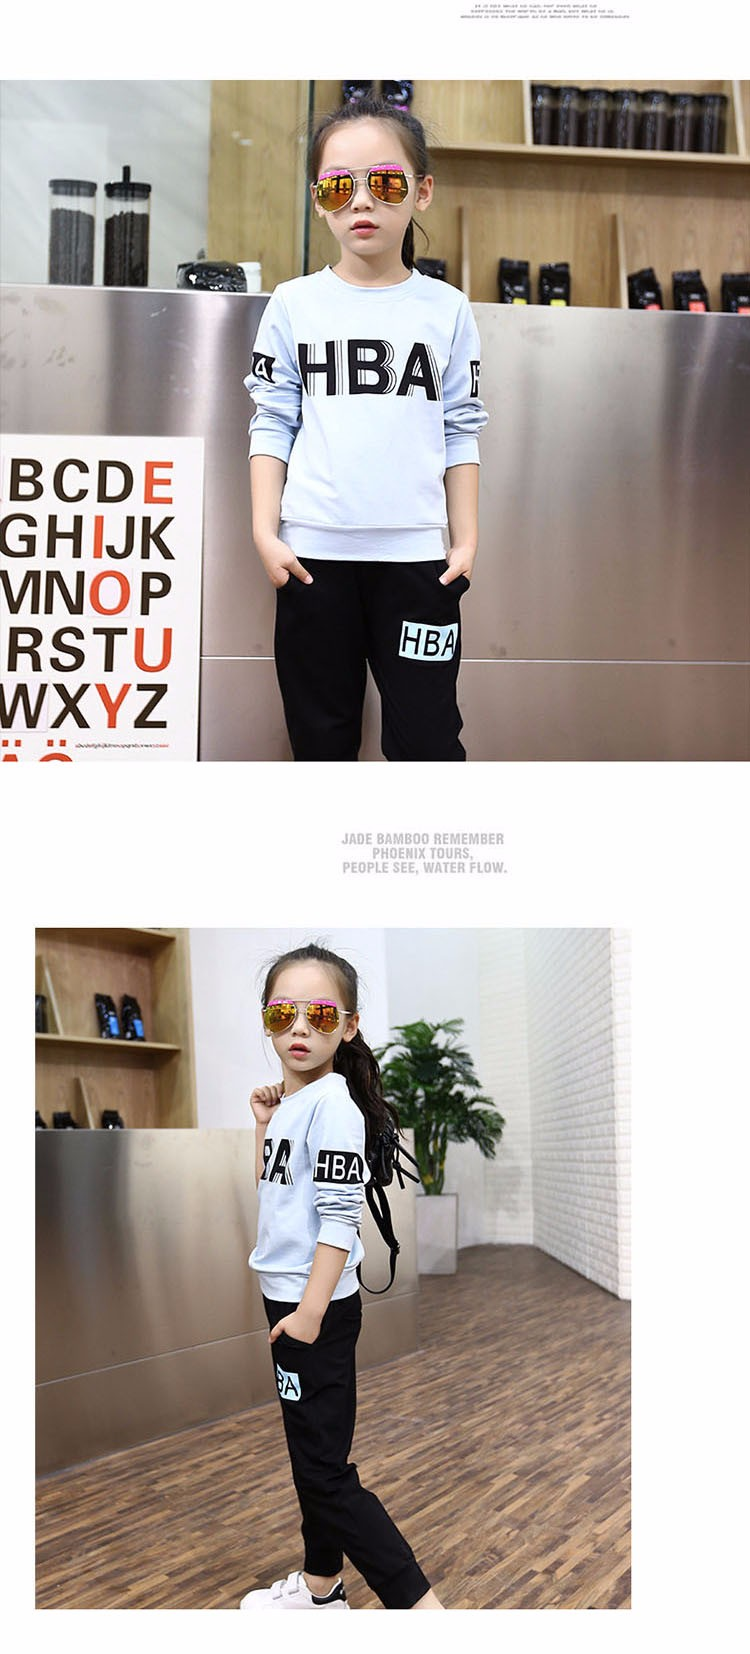 little teenage girls clothes sports suits girls outfits tracksuit autumn spring letters tops t shirts black pants tracksuits girls sets 5 6 7 8 9 10 11 12 13 14 15 16 years old little big teenage girl children sport sets clothing set for gir (5)